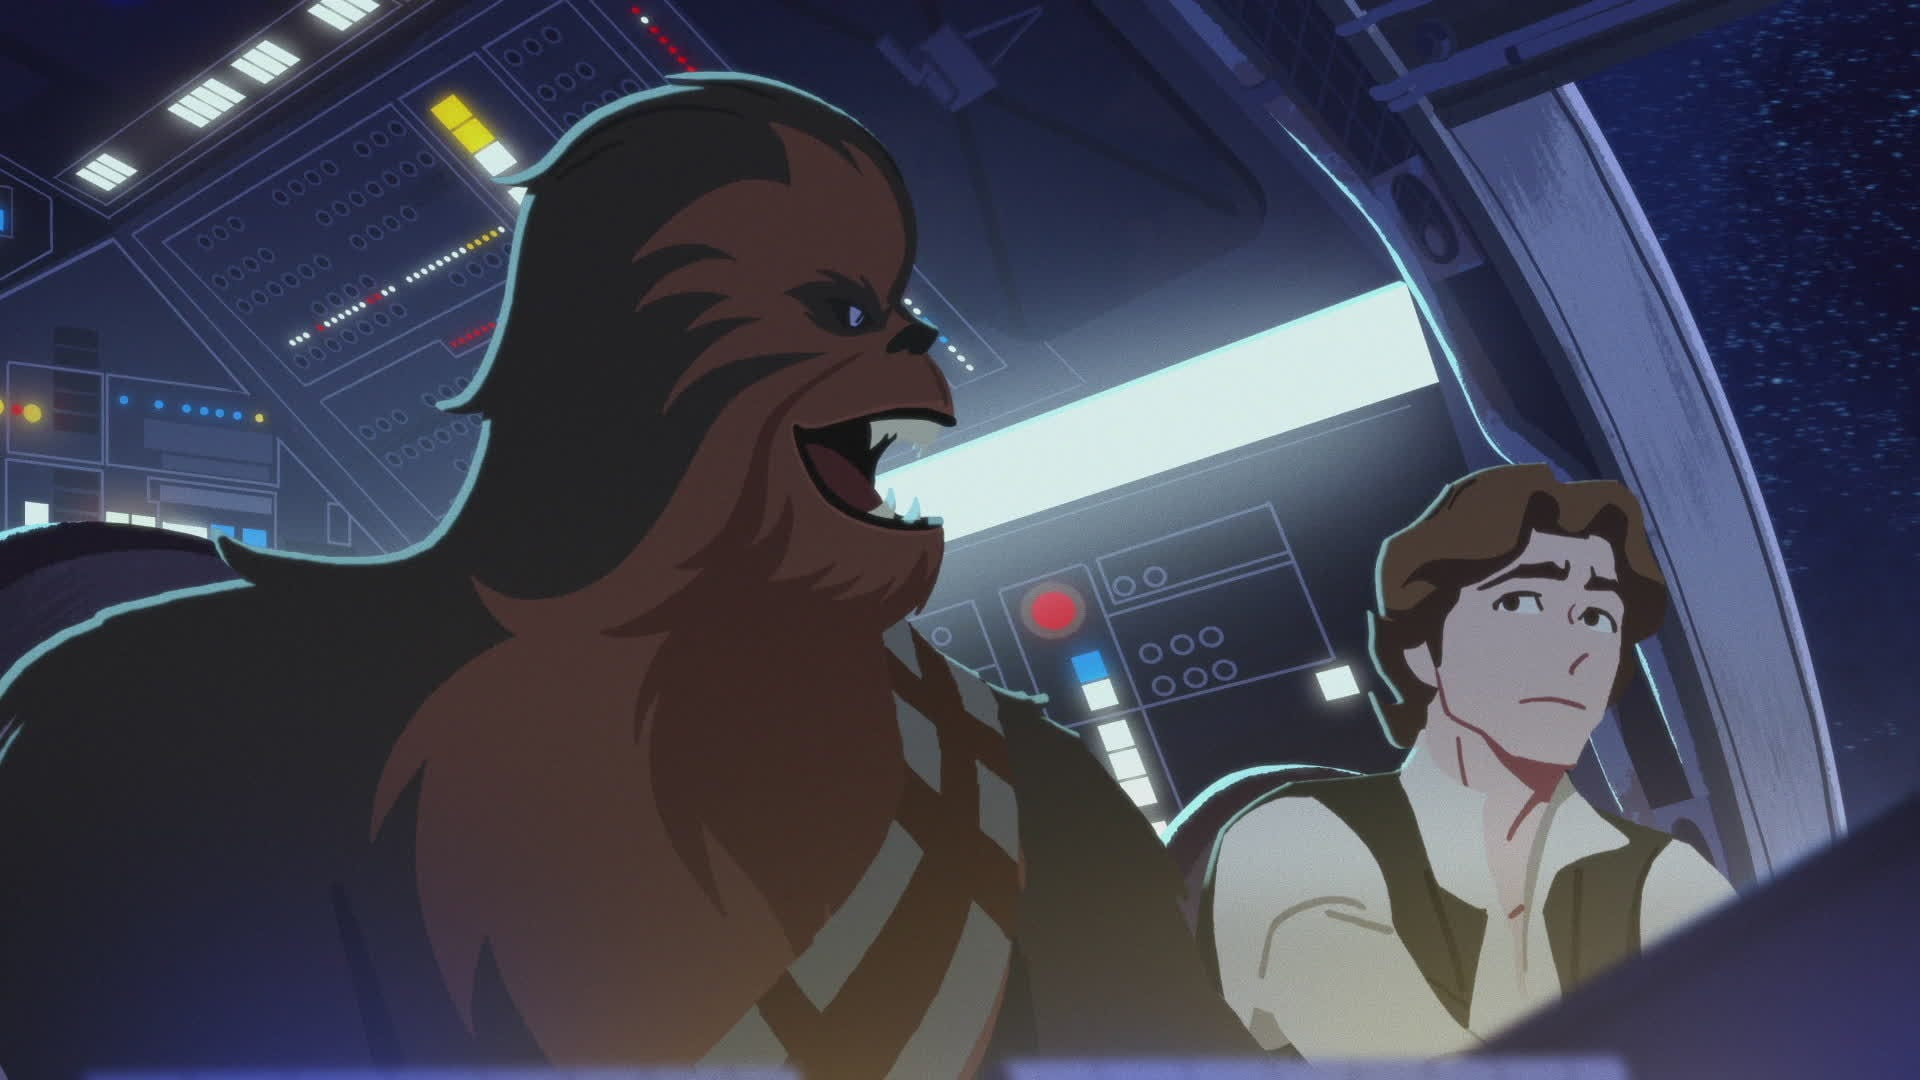 Chewbacca - The Trusty Co-Pilot | Star Wars Galaxy of Adventures